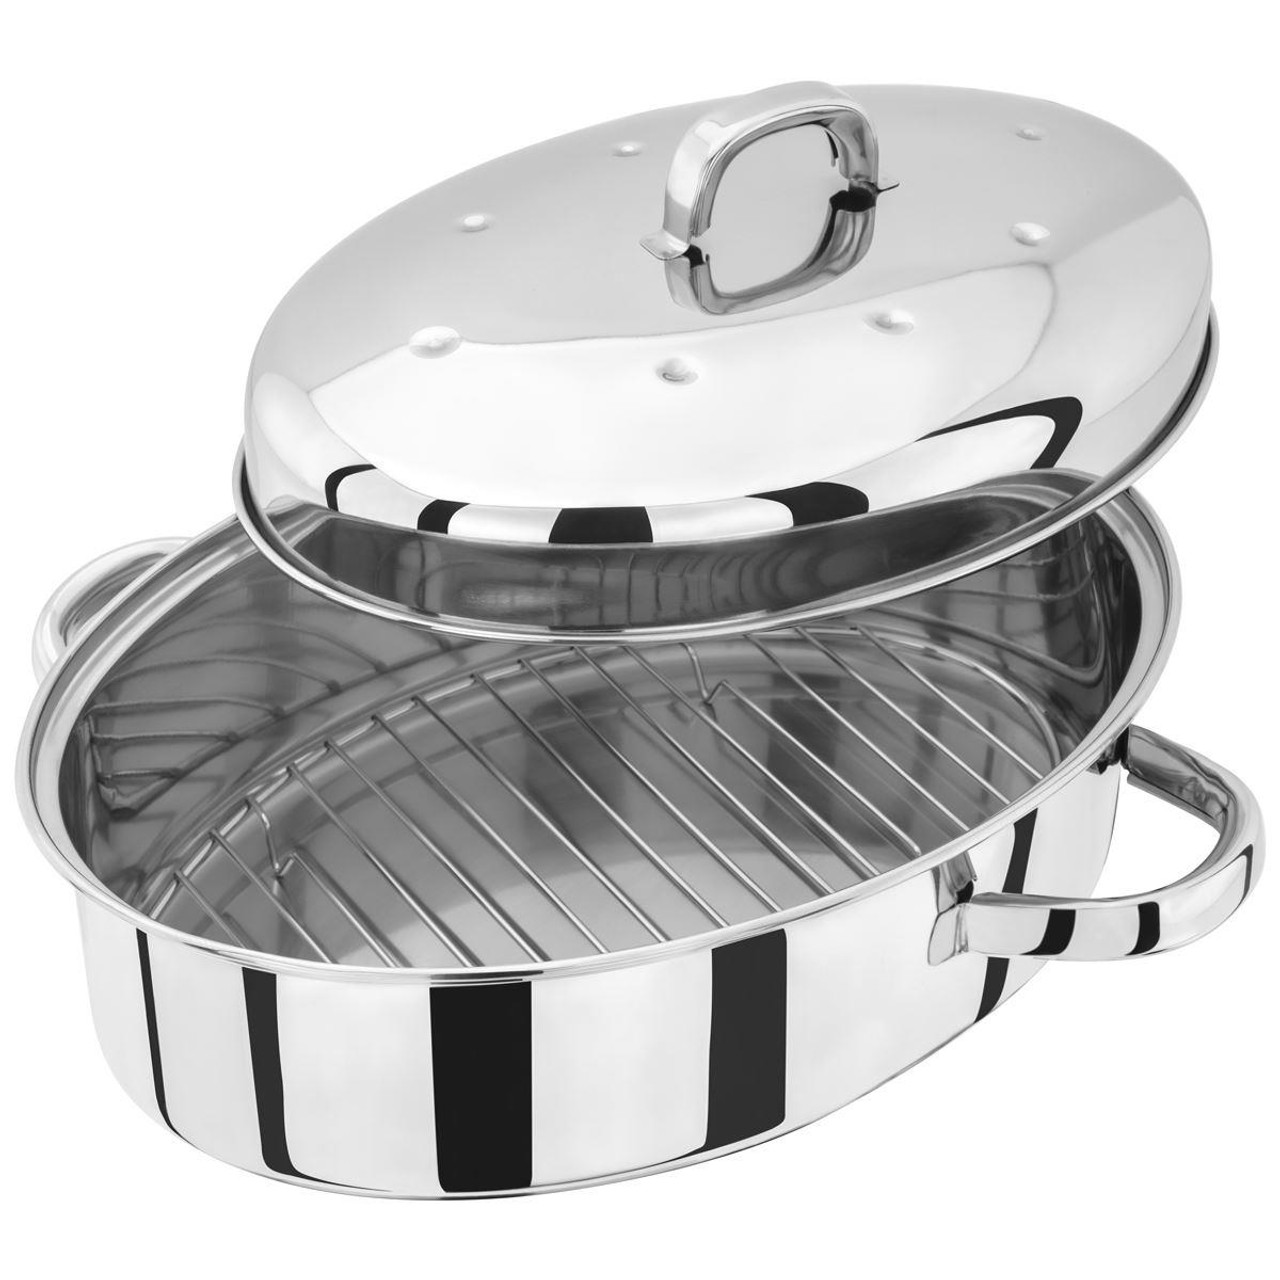 Judge Speciality High Oval Roaster With Rack